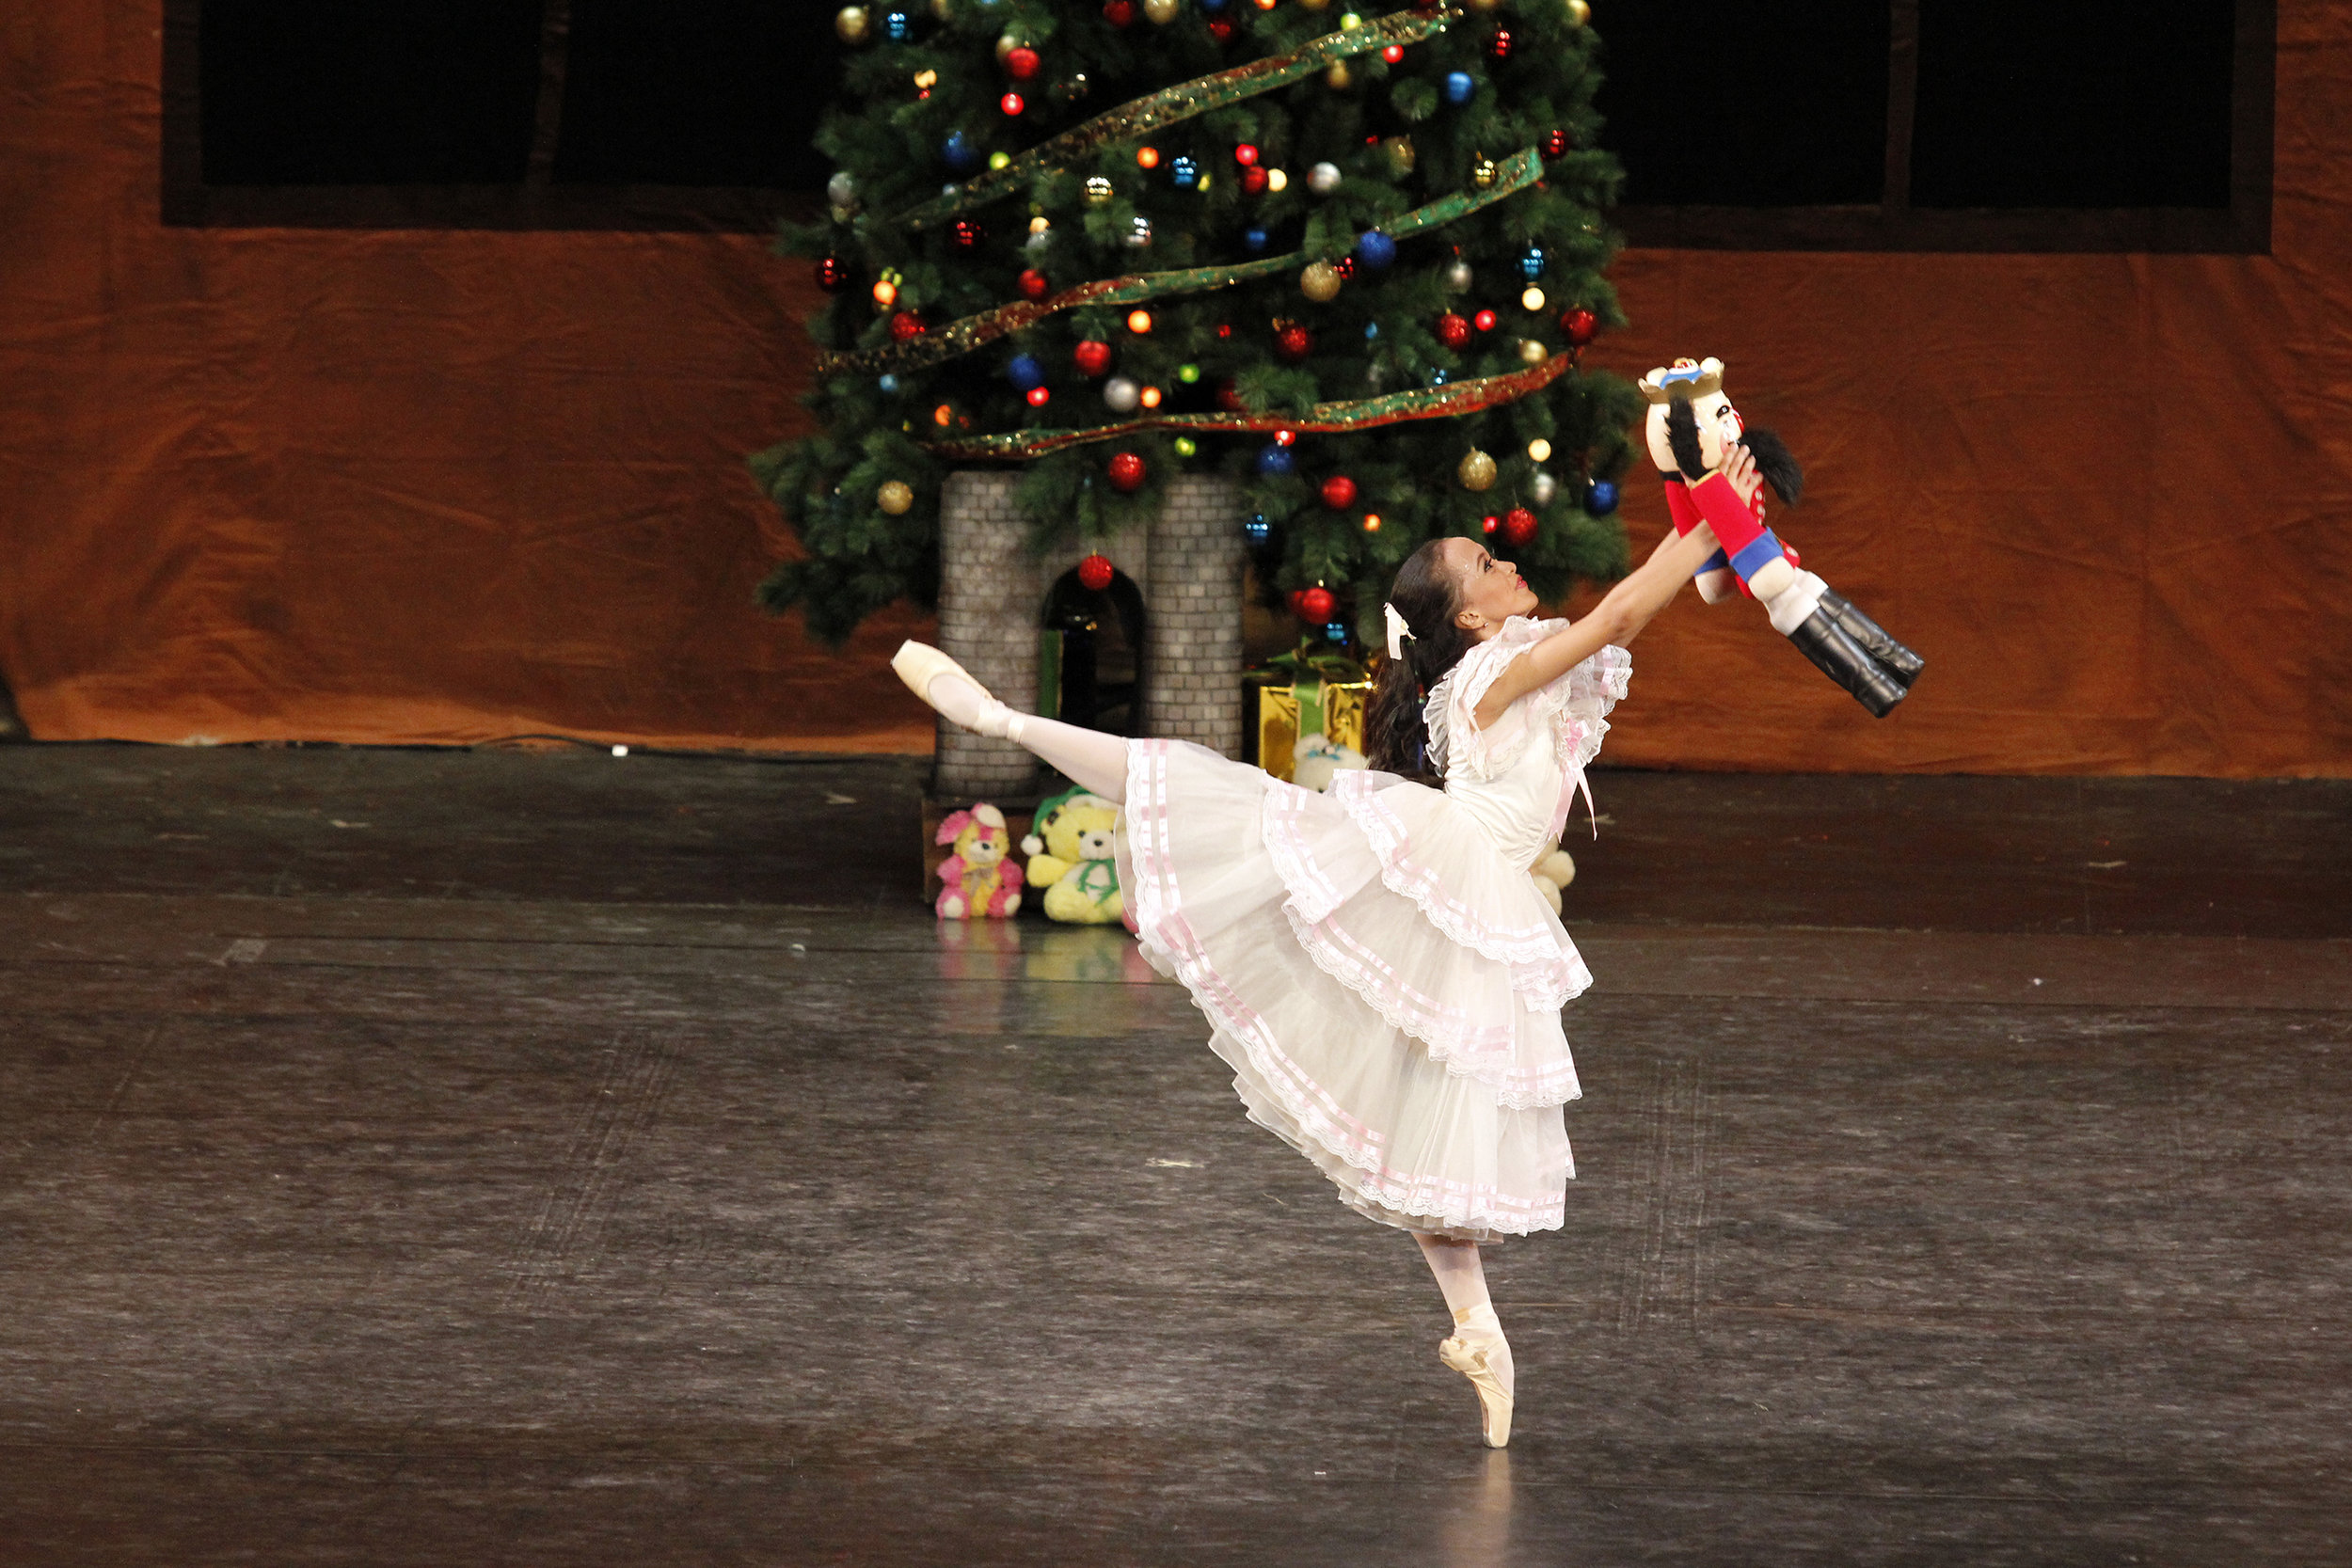 Among her most memorable performances was the role of Masha in the much-loved ballet,  The Nutcracker.